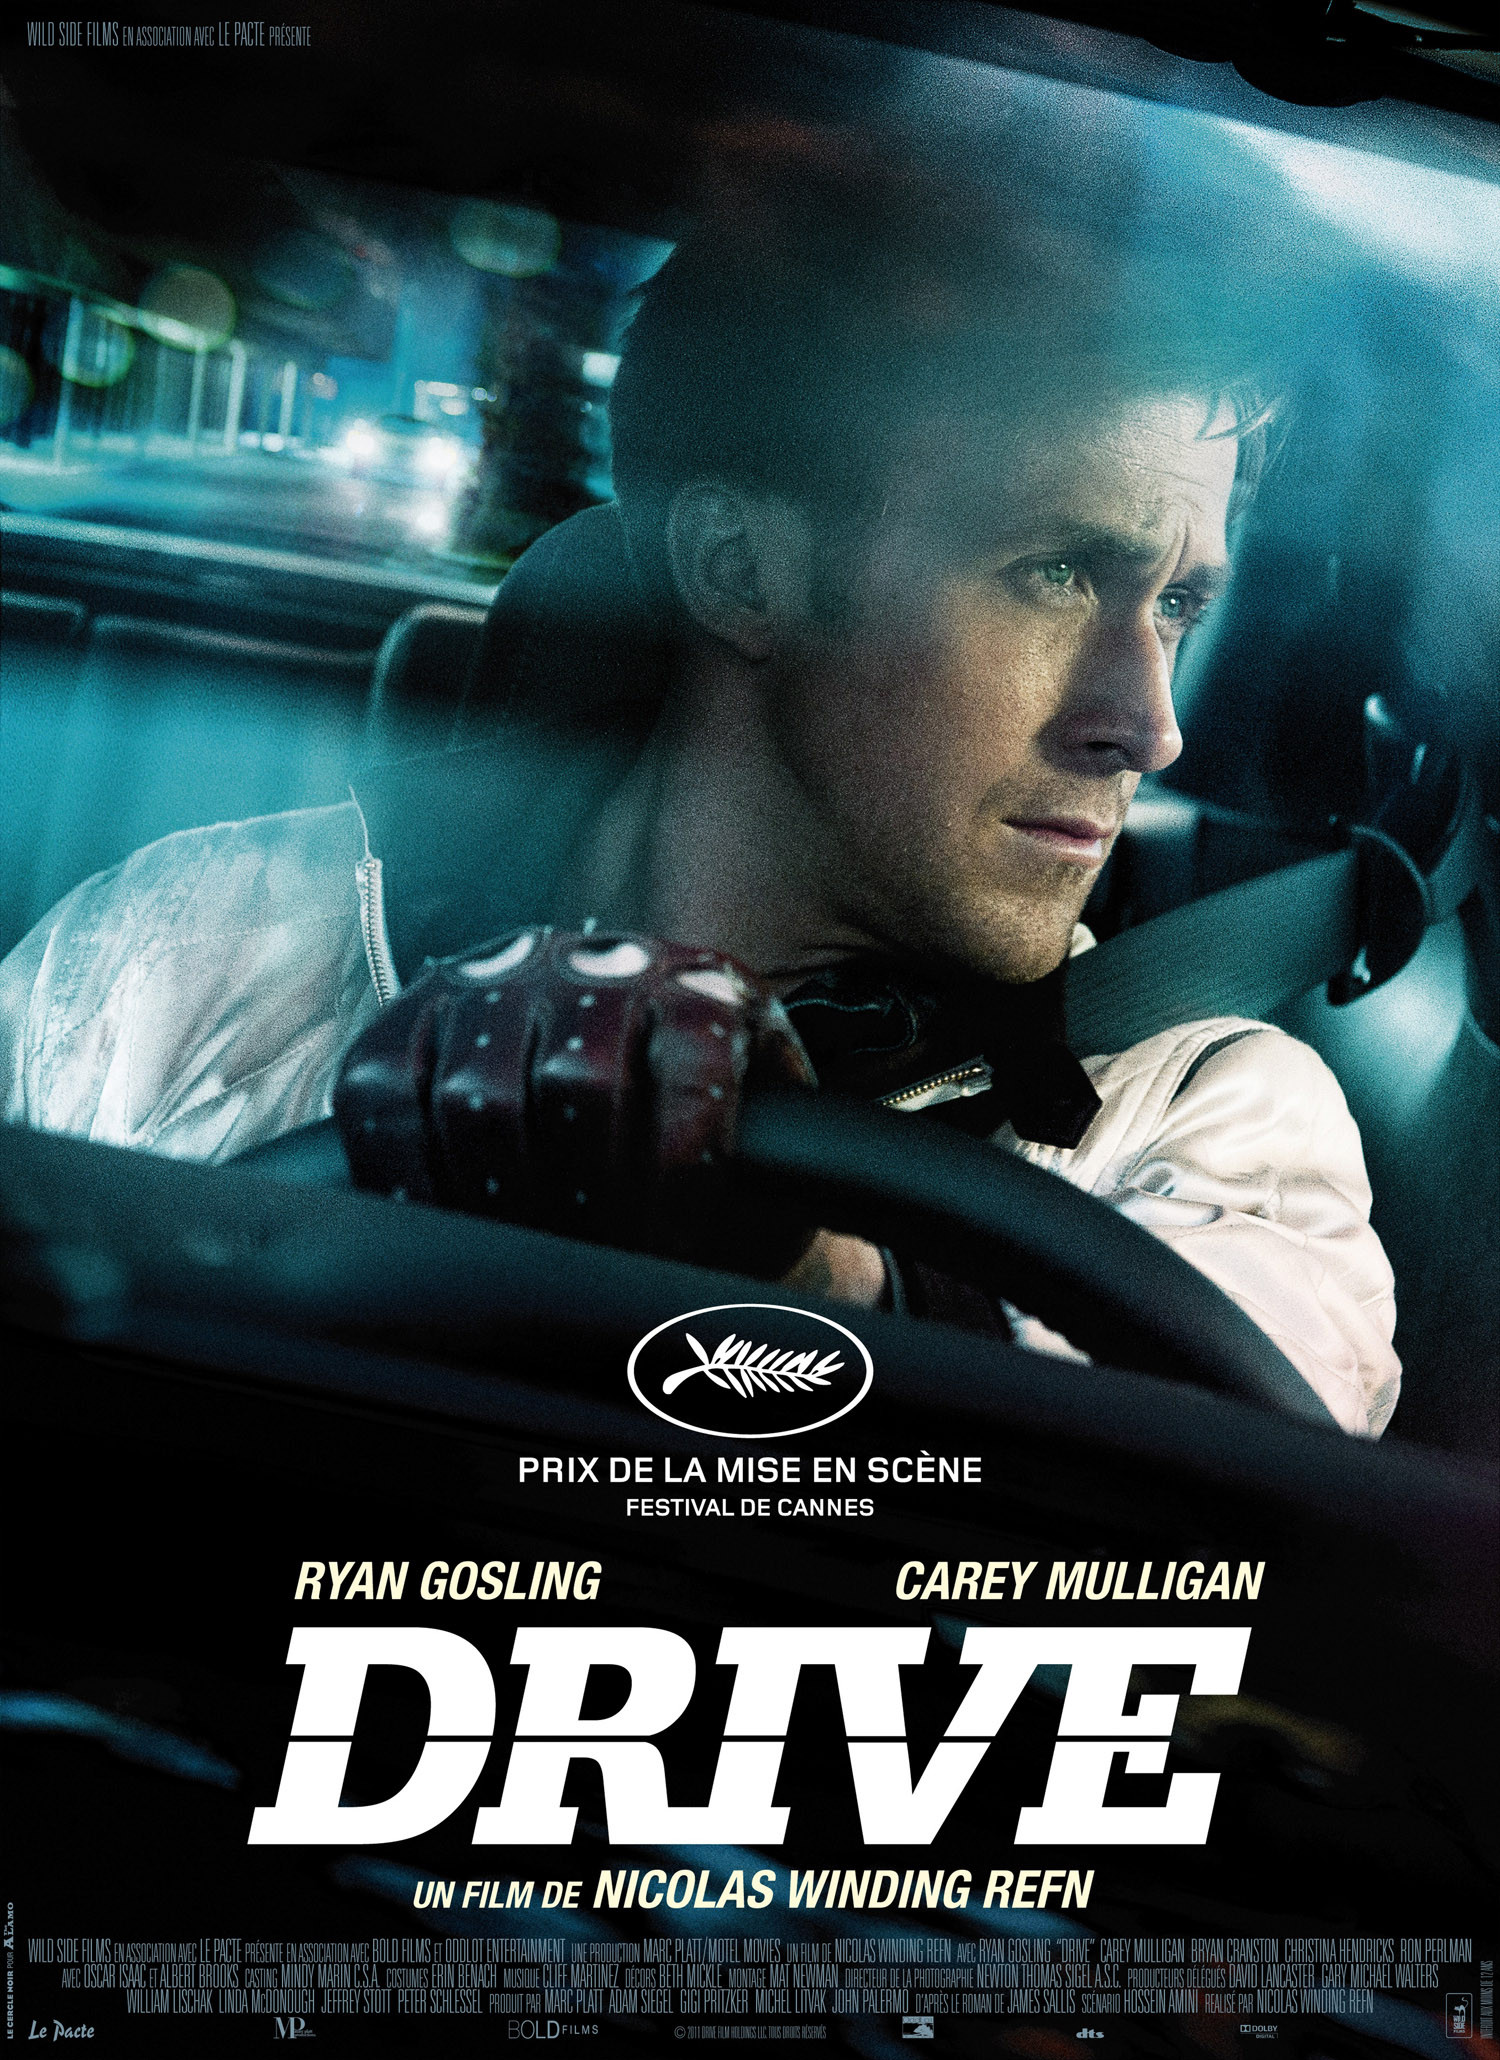 Drive 2011 movie poster ryan gosling in this very cool very slick